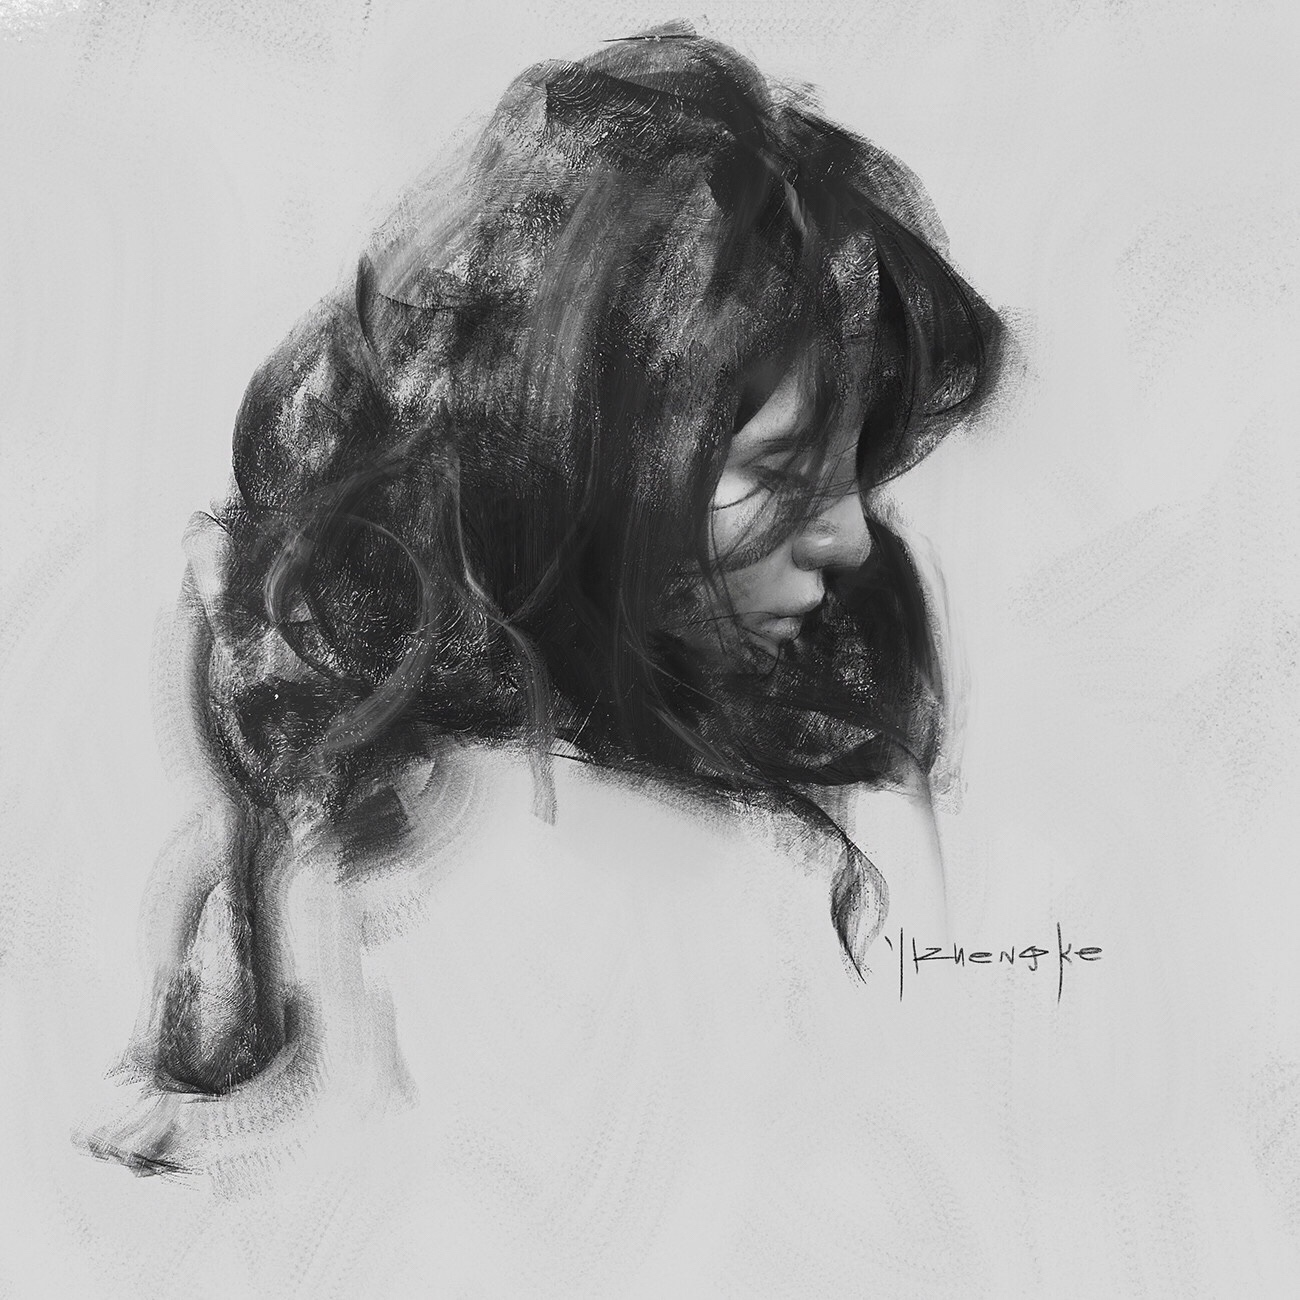 Yizheng Ke, dark, art, ethereal, drawing, black and white, obscure, portrait